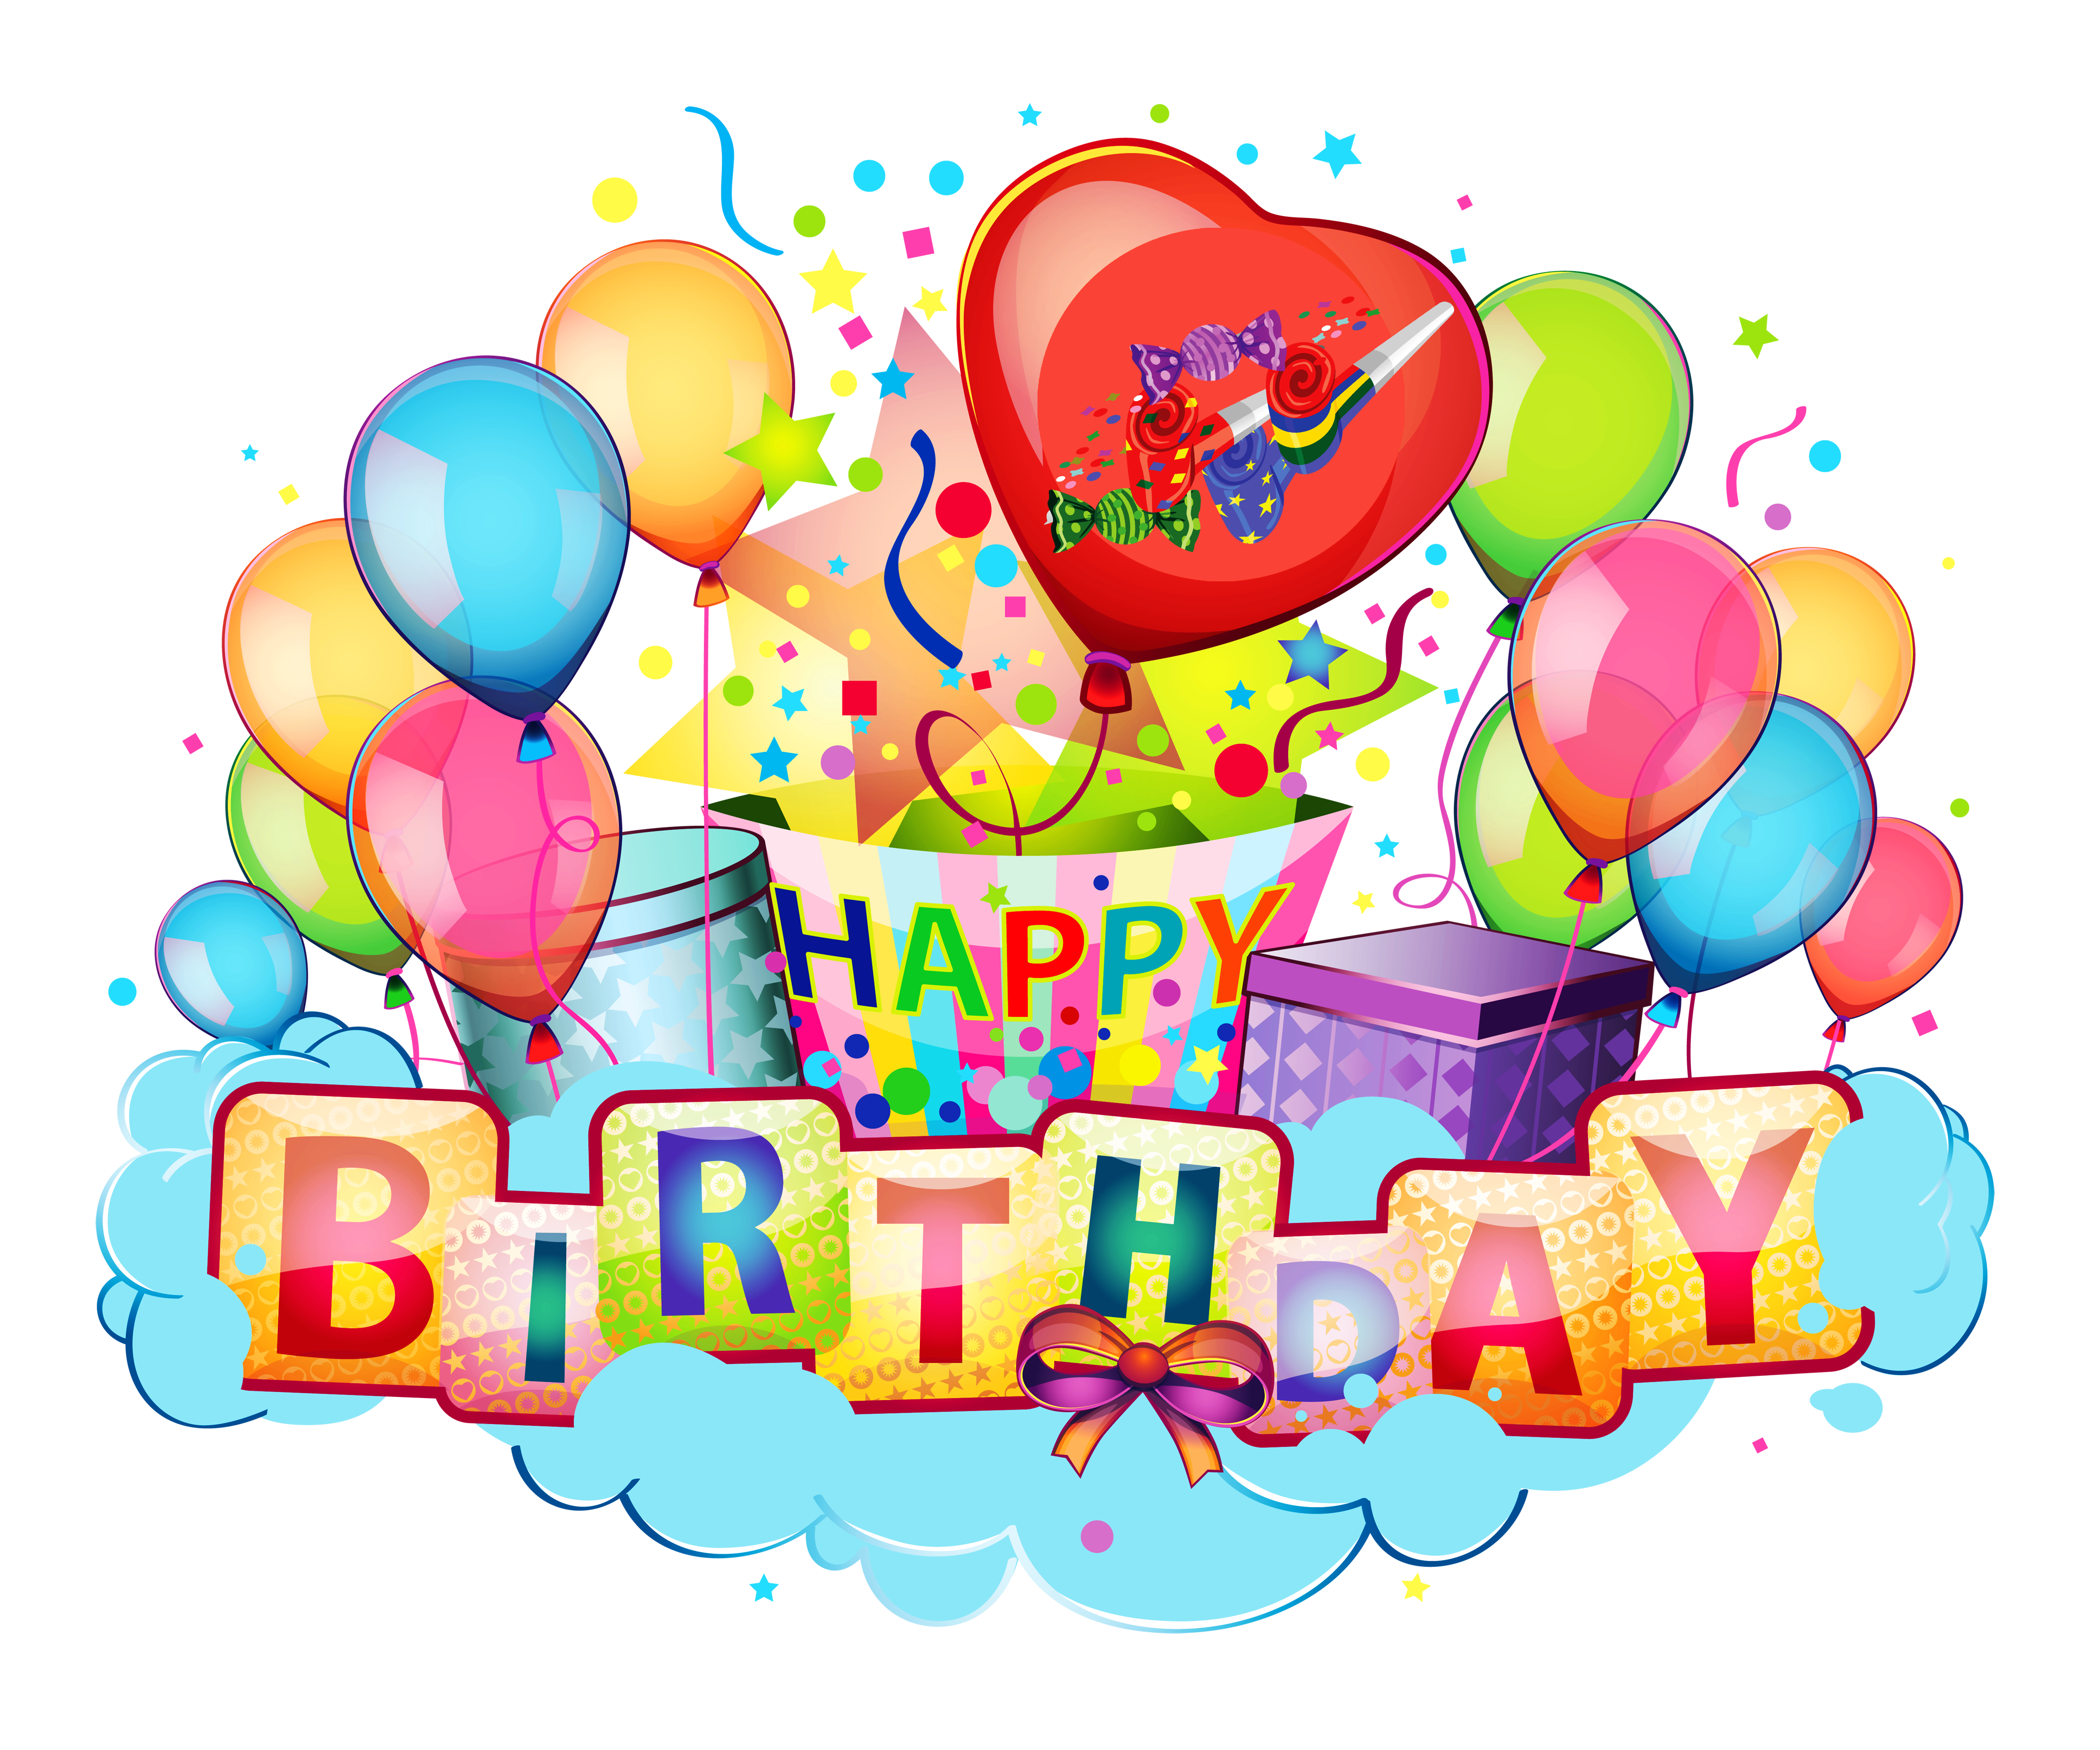 http://vignette1.wikia.nocookie.net/animaljam/images/f/f4/Happy_Birthday_Decor_Transparent_Clipart_Picture.png/revision/latest?cb=20141204170206